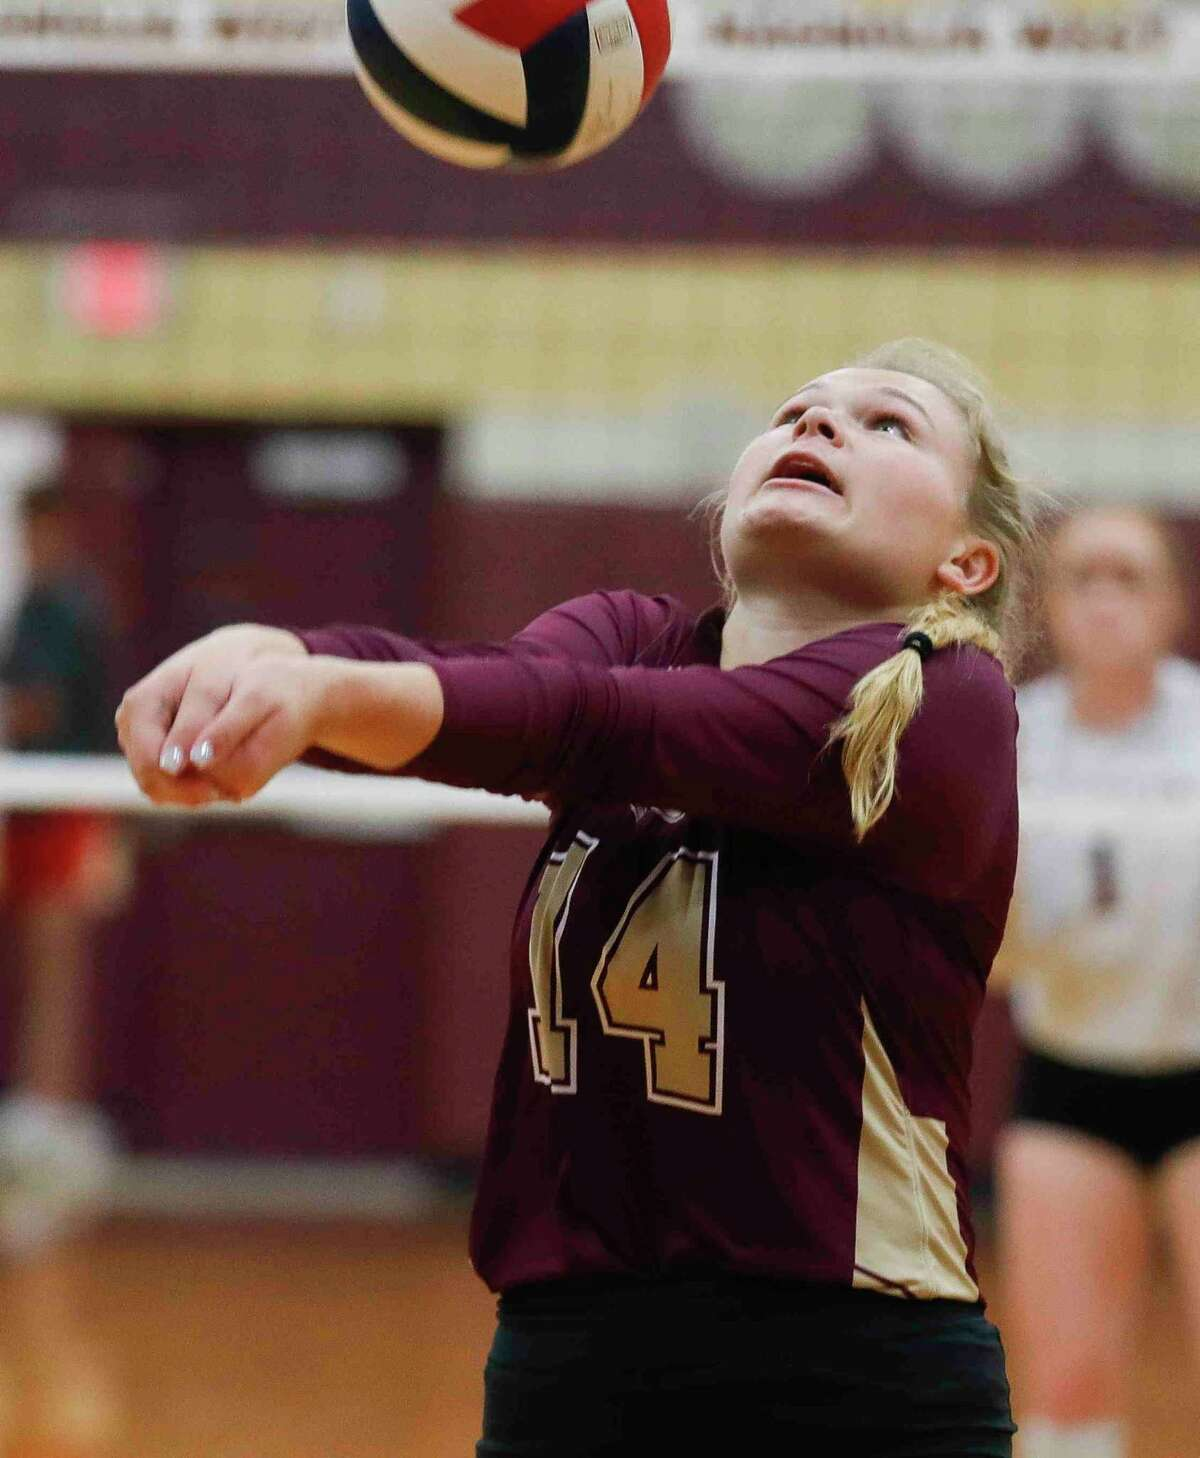 Magnolia West's Kassidy Johnson (14) returns a hit during the first set of a District 19-5A high school volleyball match at Magnolia West High School, Tuesday, Sept. 21, 2021, in Magnolia.